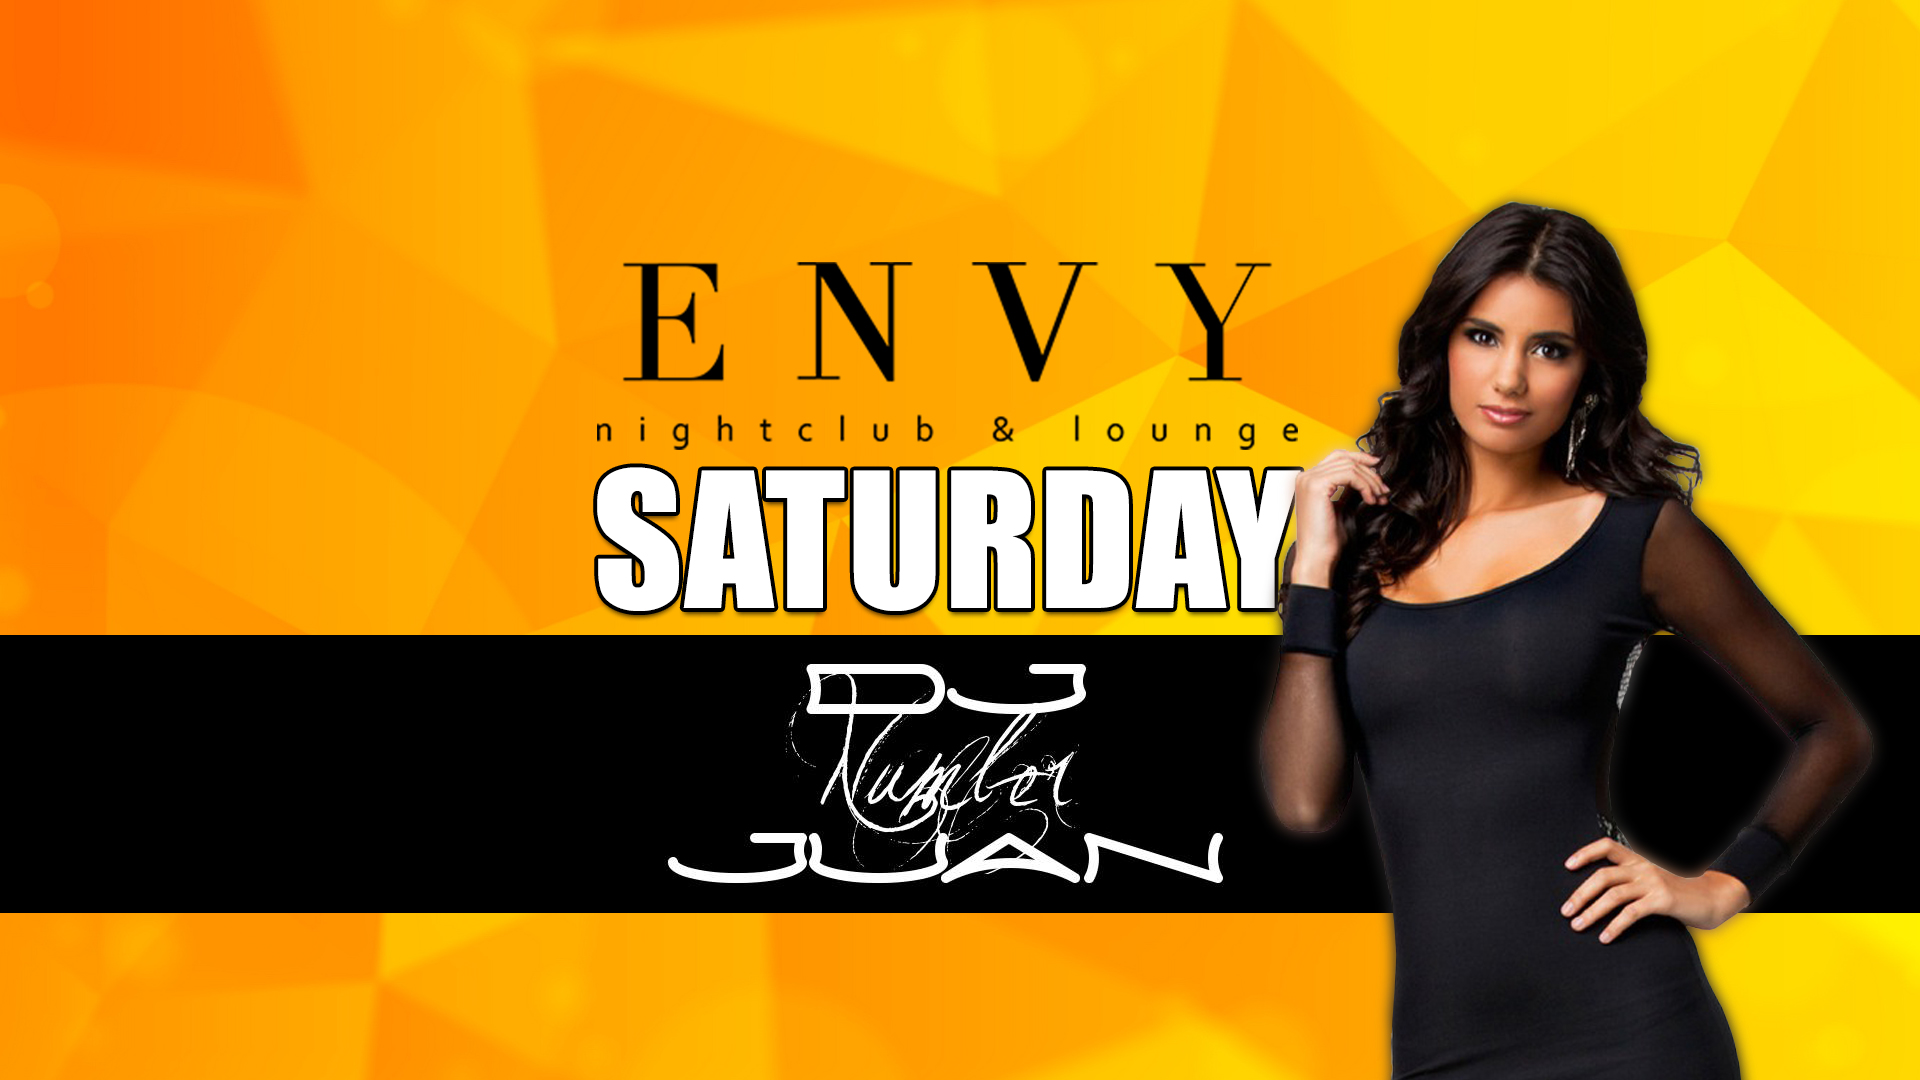 envy_saturday_juan